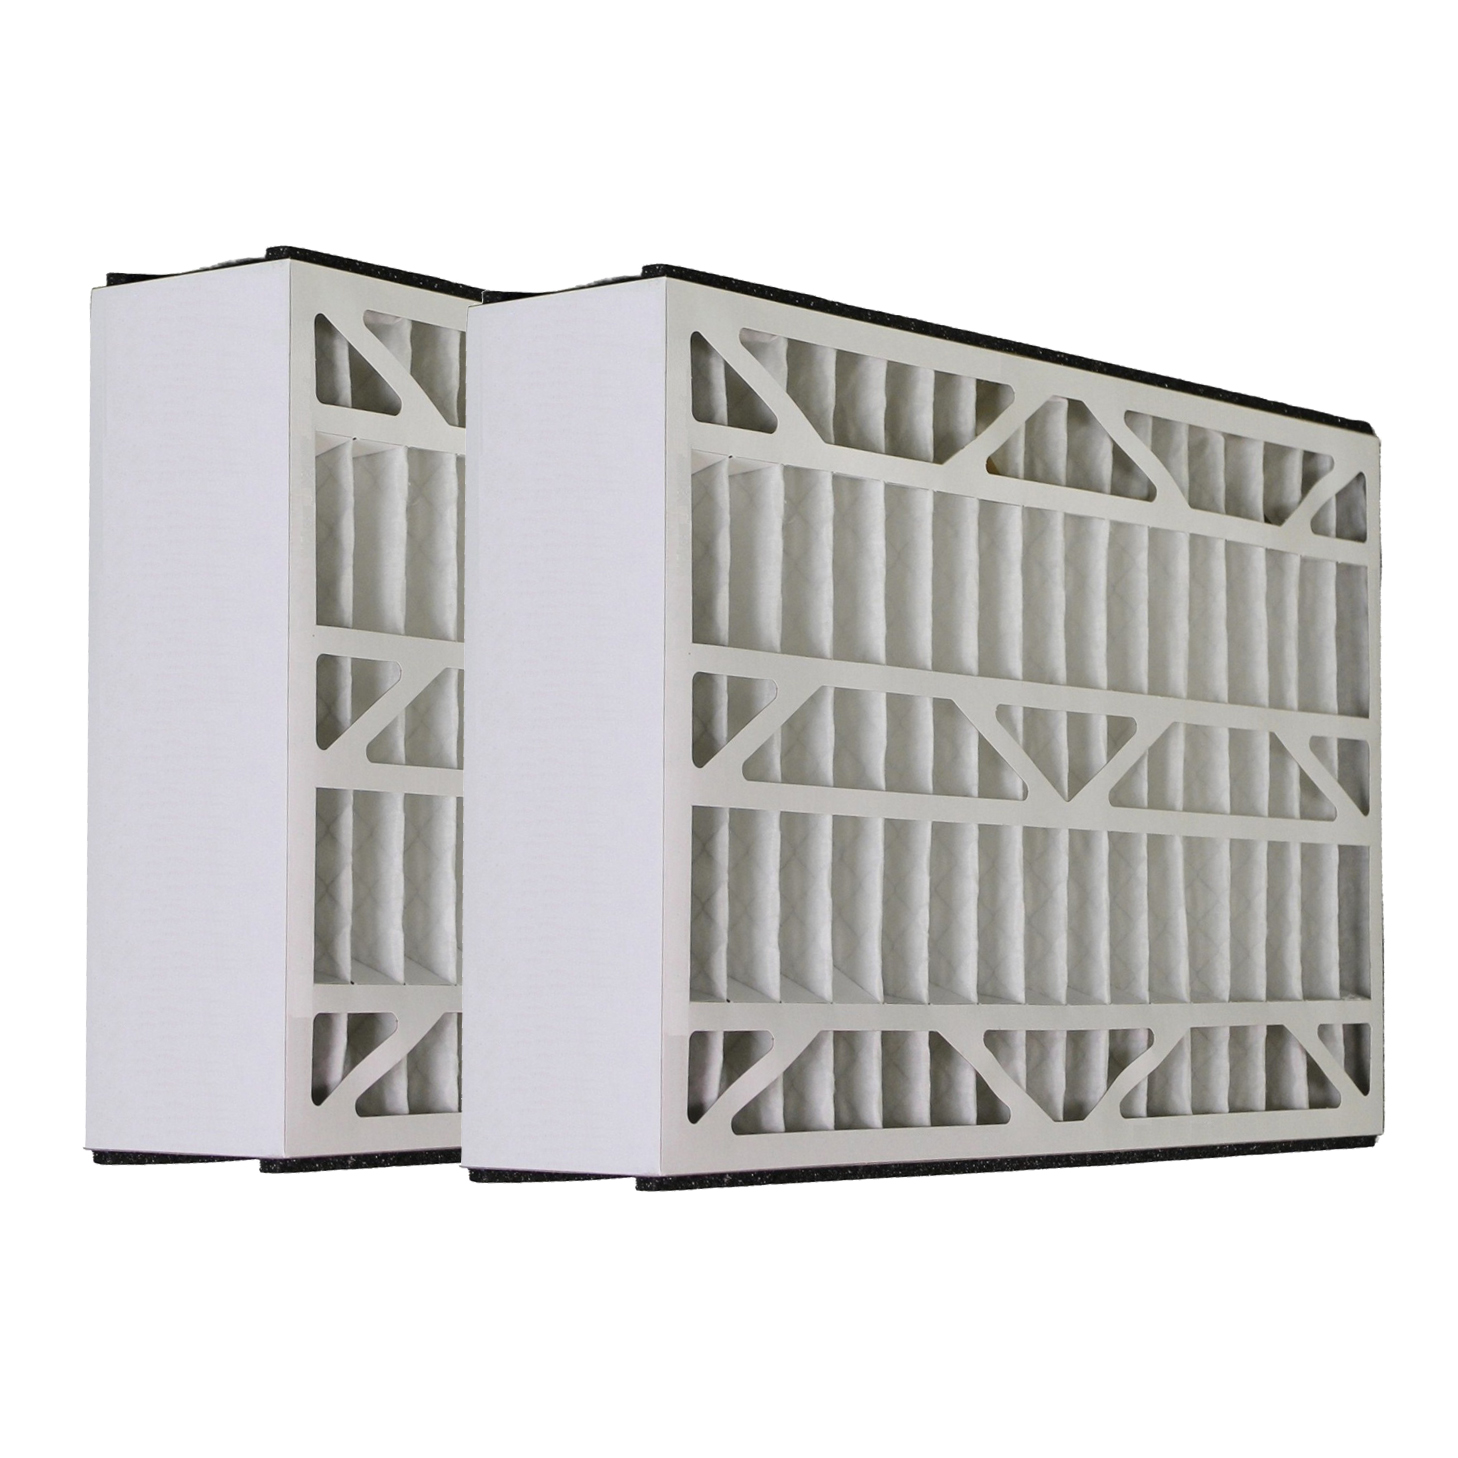 Tier1 Replacement for GeneralAire 16x25x5 Merv 11 14161 & 4511 Air Filter 2 Pack